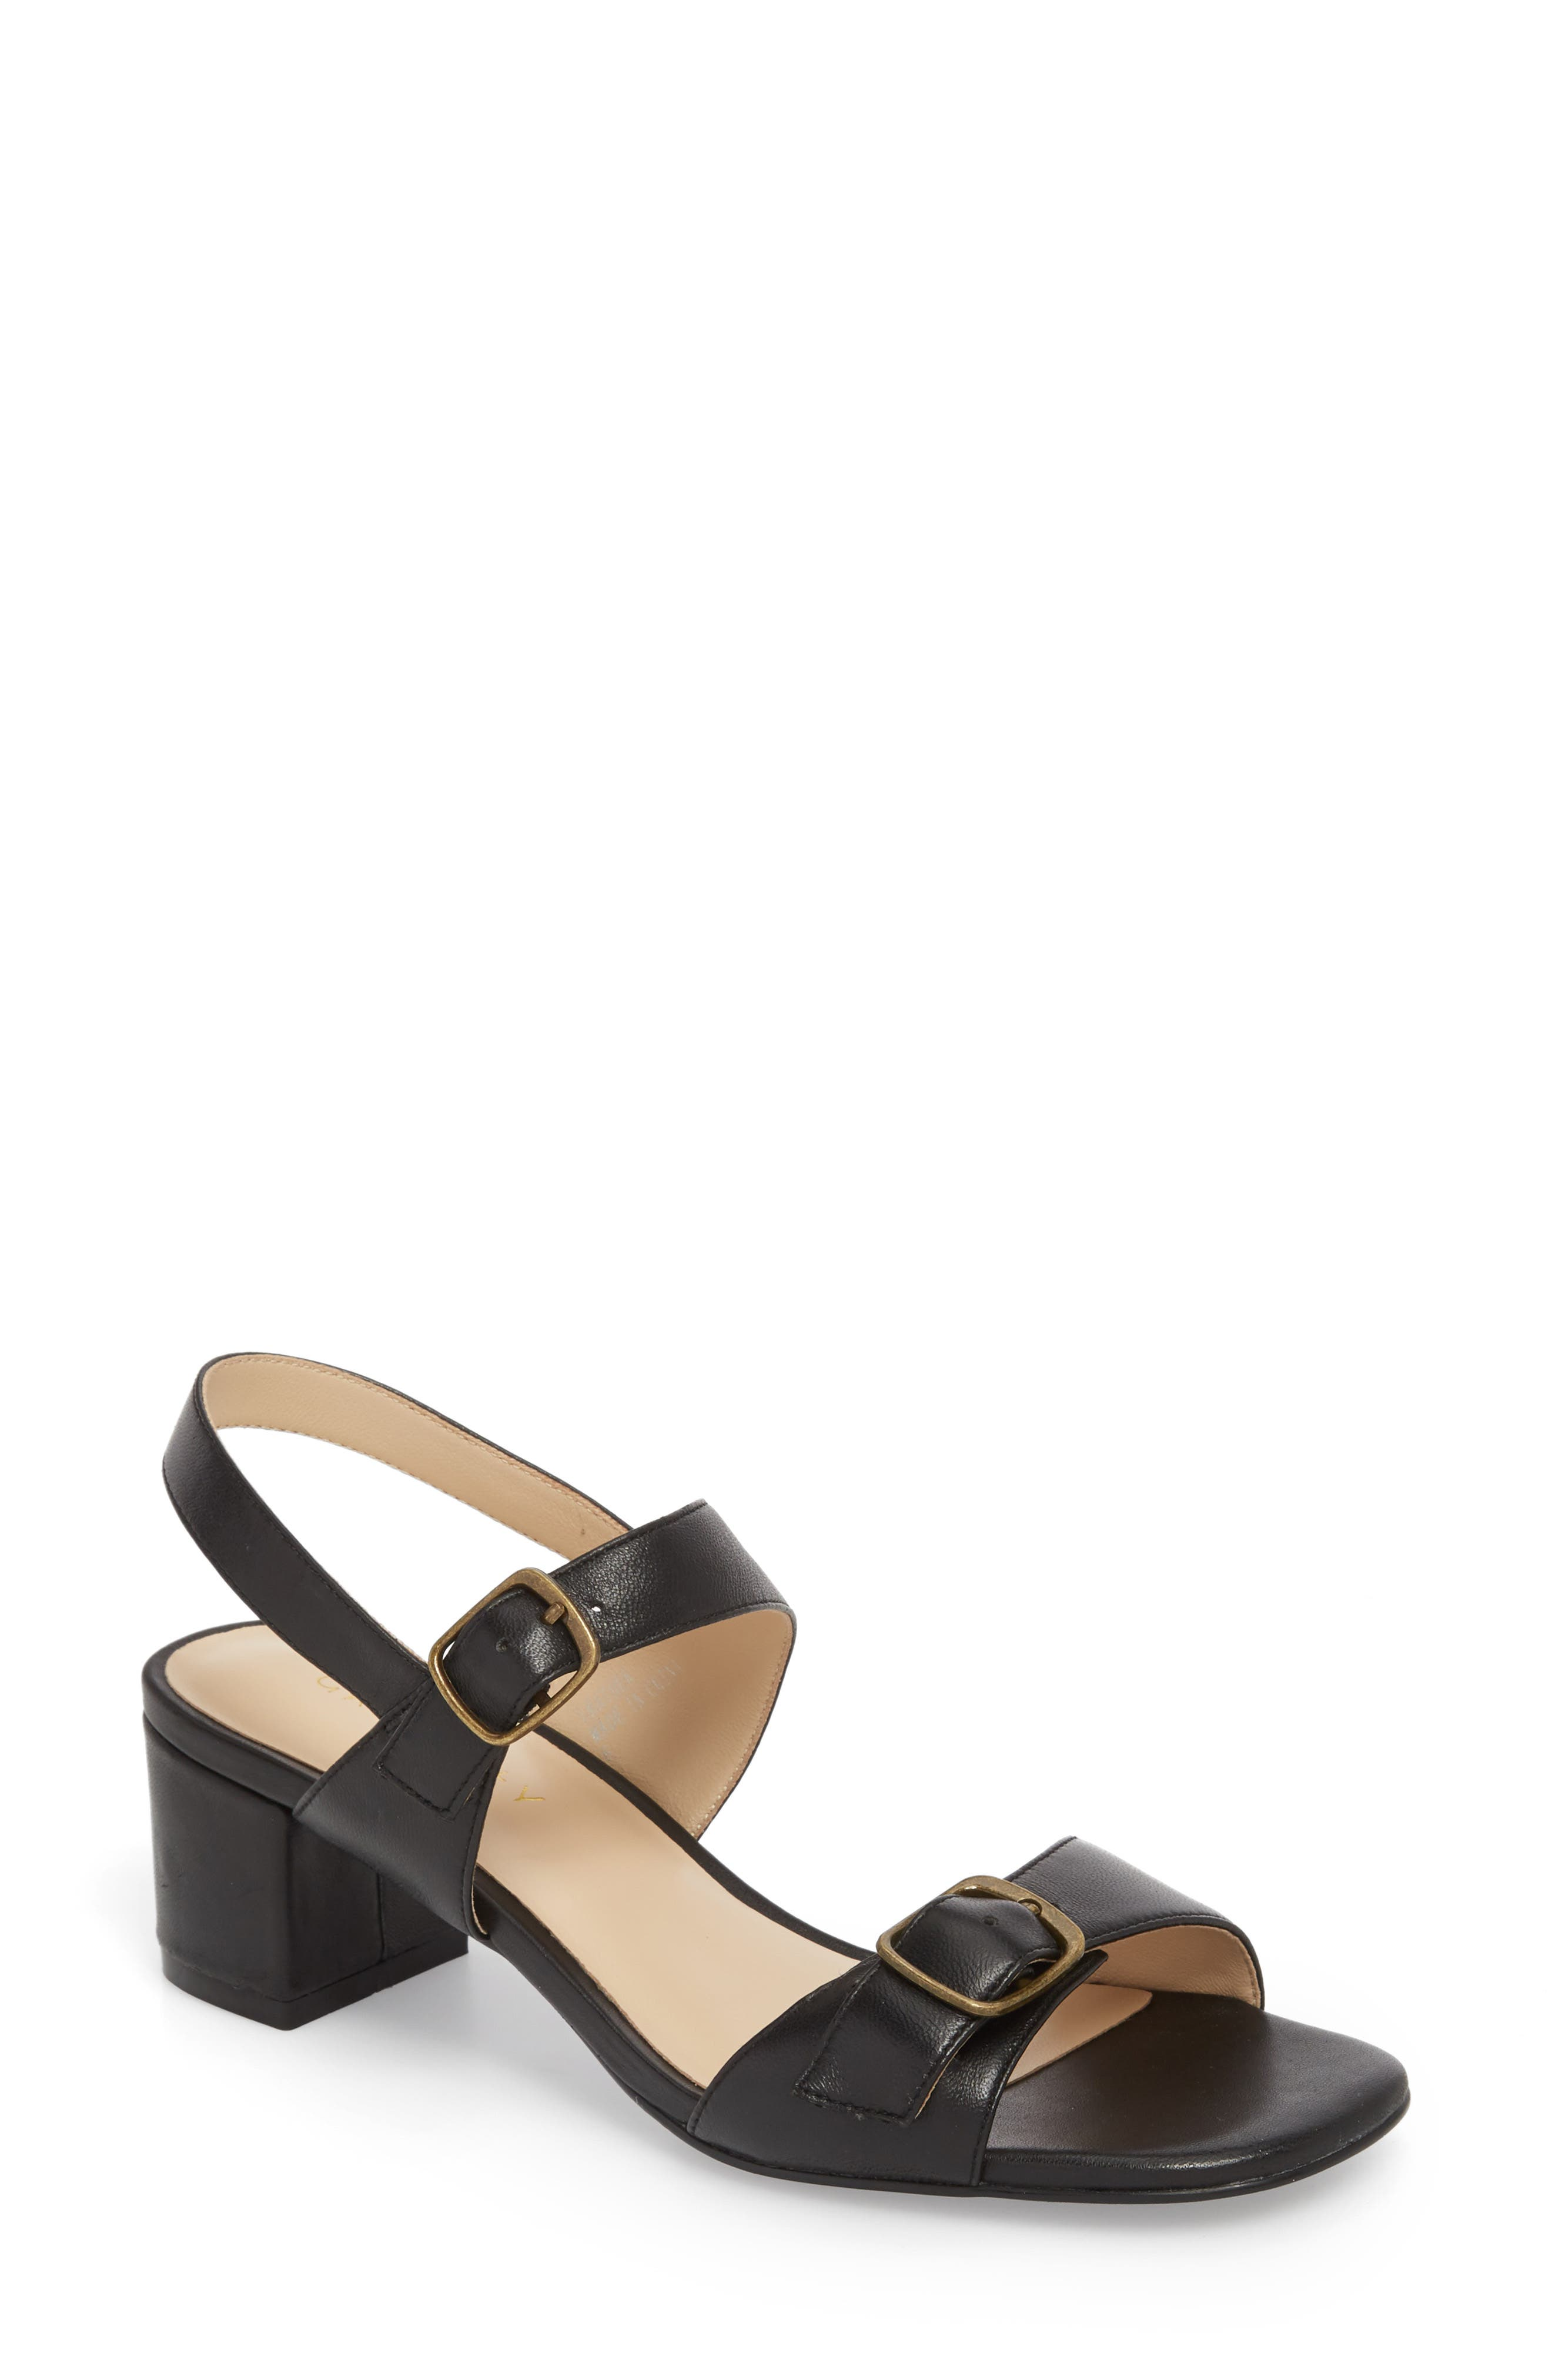 Caroline Sandal,                         Main,                         color, Black